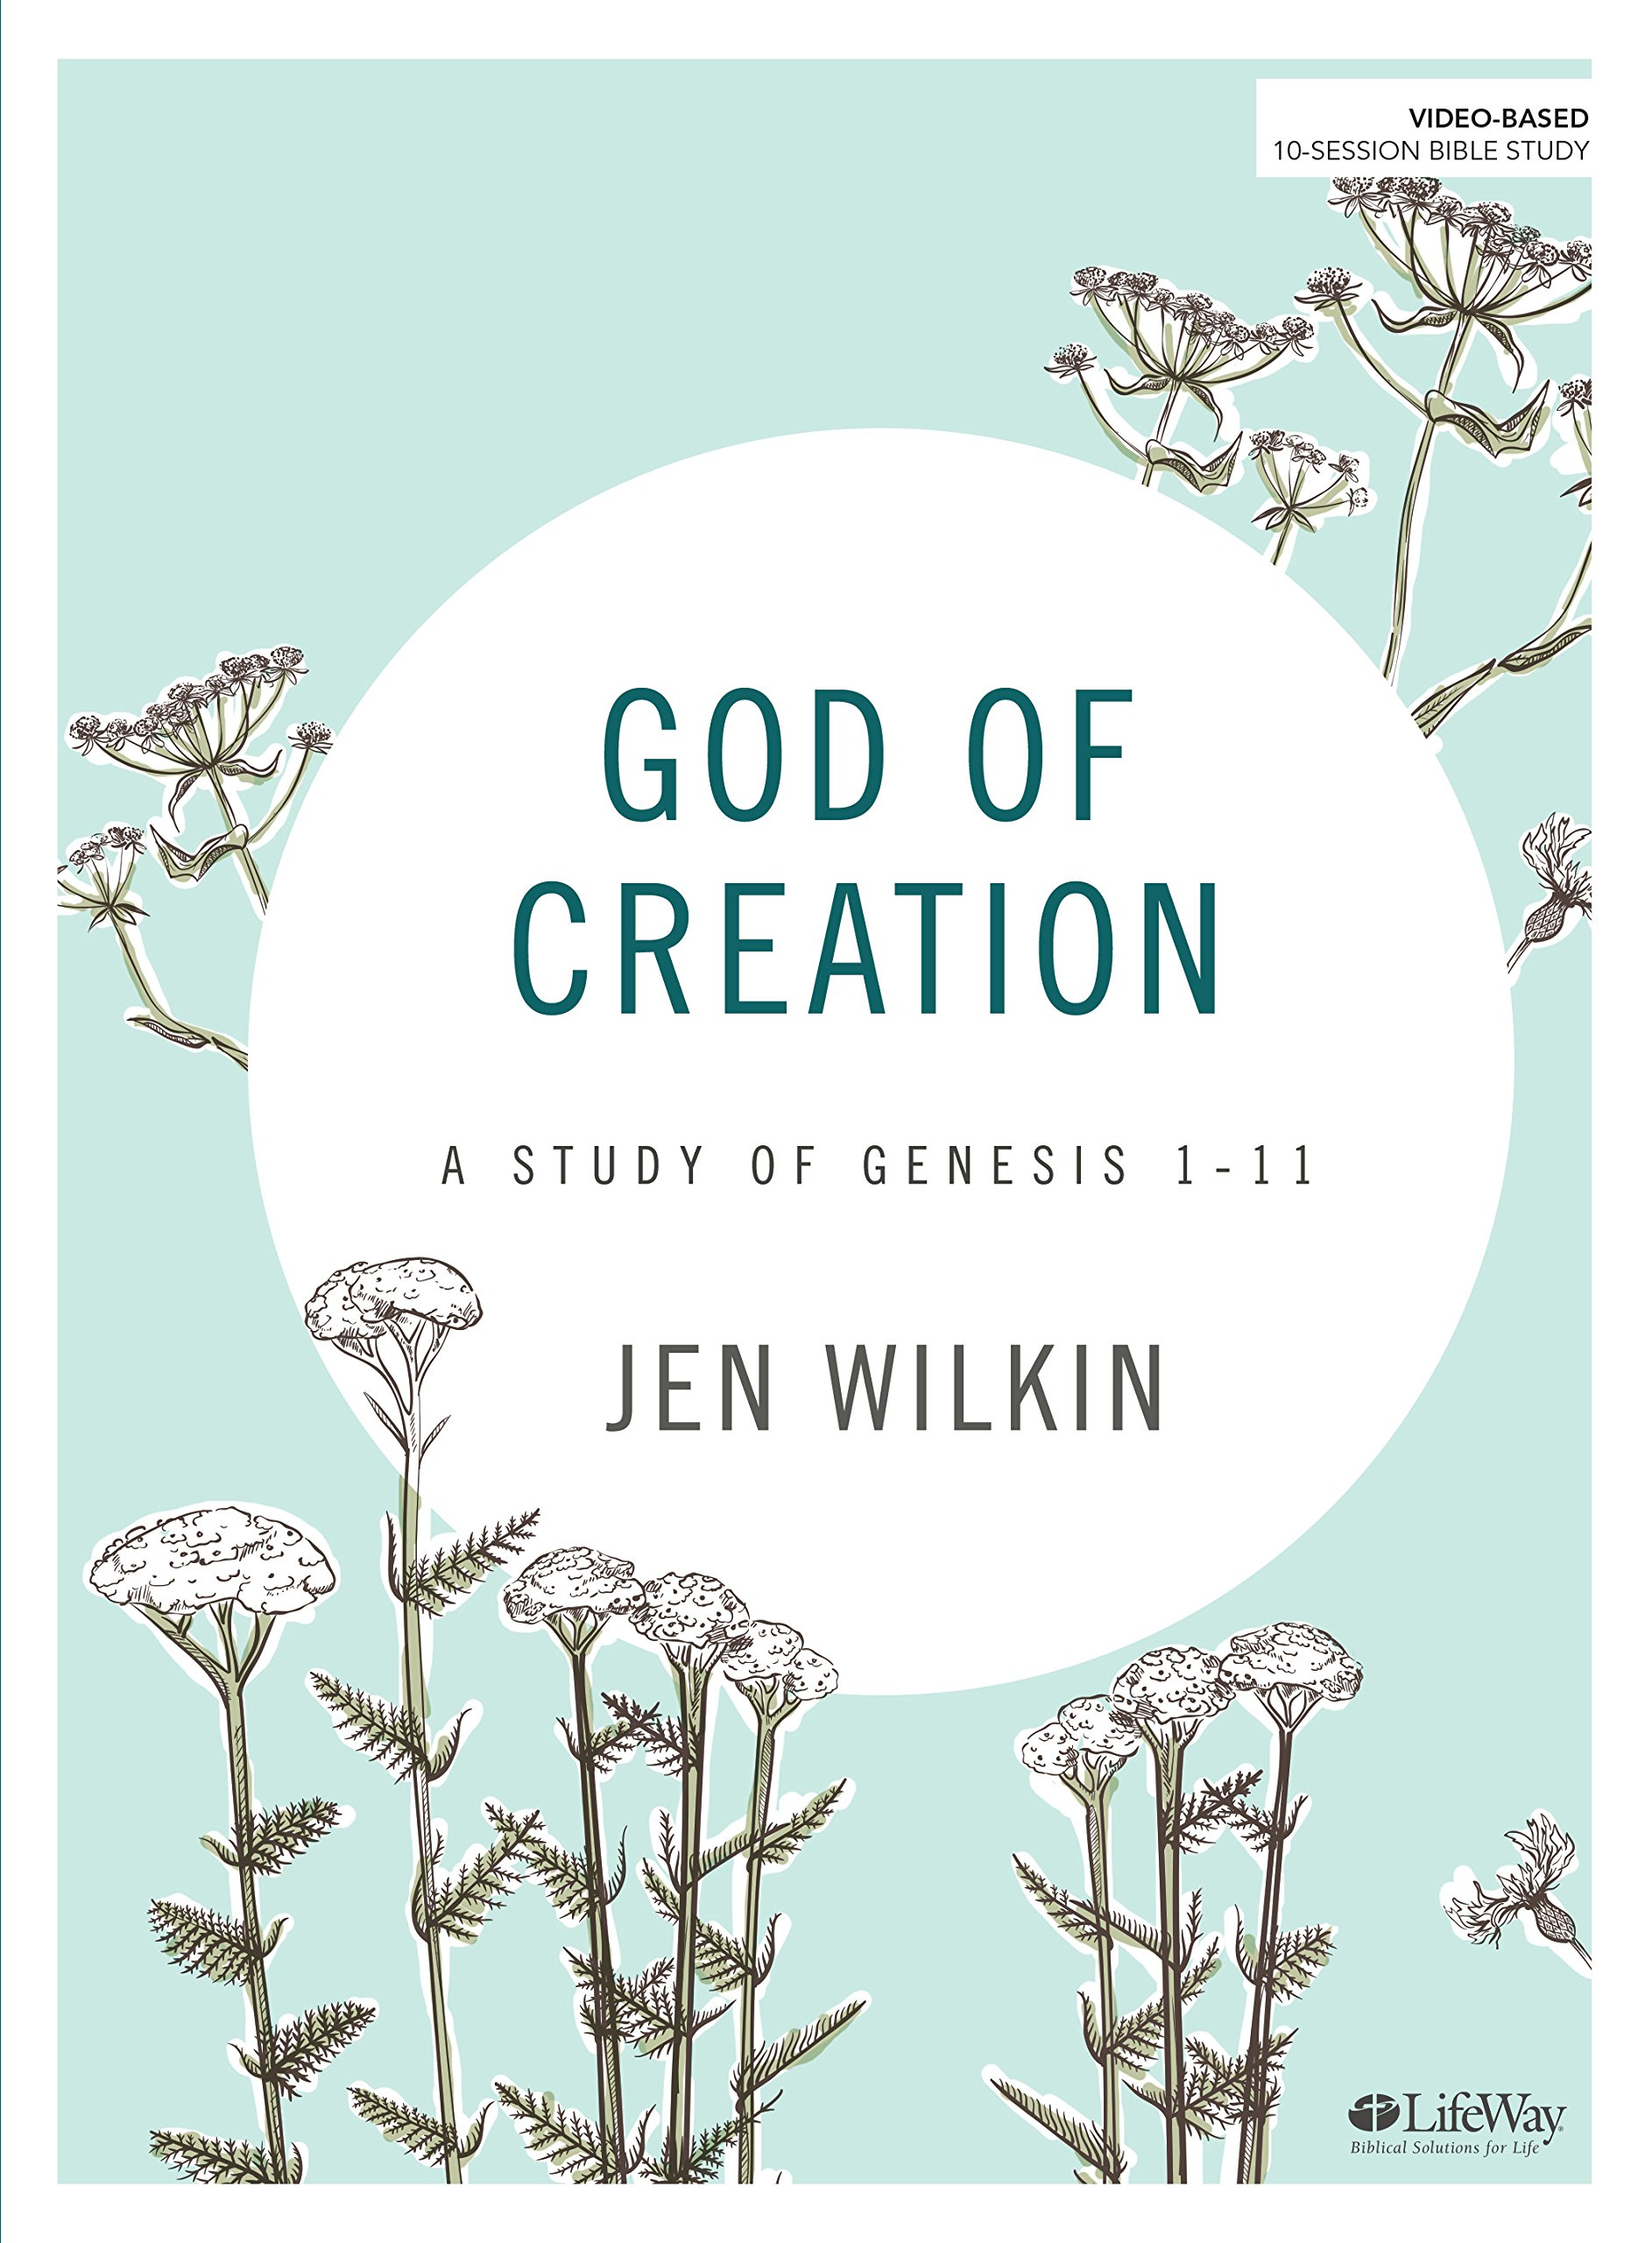 DETAILS - WHAT: We will be studying Genesis 1-11 using a workbook study guide written by Jen Wilkin.STUDY STARTS: AUGUST 6, 2019Join us for an Introduction + Dessert + Coffee Night. Men & Women will be together for the first week! Childcare will be provided. Location TBD.WHEN: Tuesdays at 6:30pm – 8:00pm | August 13 - December 10Each week we will alternate men and women. Ladies first!WHERE: Aletheia Church OfficeHOMEWORKAll classes require weekly outside homework, usually 1 – 2 hours that is to be done prior to our class meeting in order to participate in the discussion.REGISTRATION FEEThe Bible Study class requires a small fee of $18 Registration ends Sunday, August 4PLEASE NOTE: Registration is limited to 30 men and 30 women so register soon before space runs out!